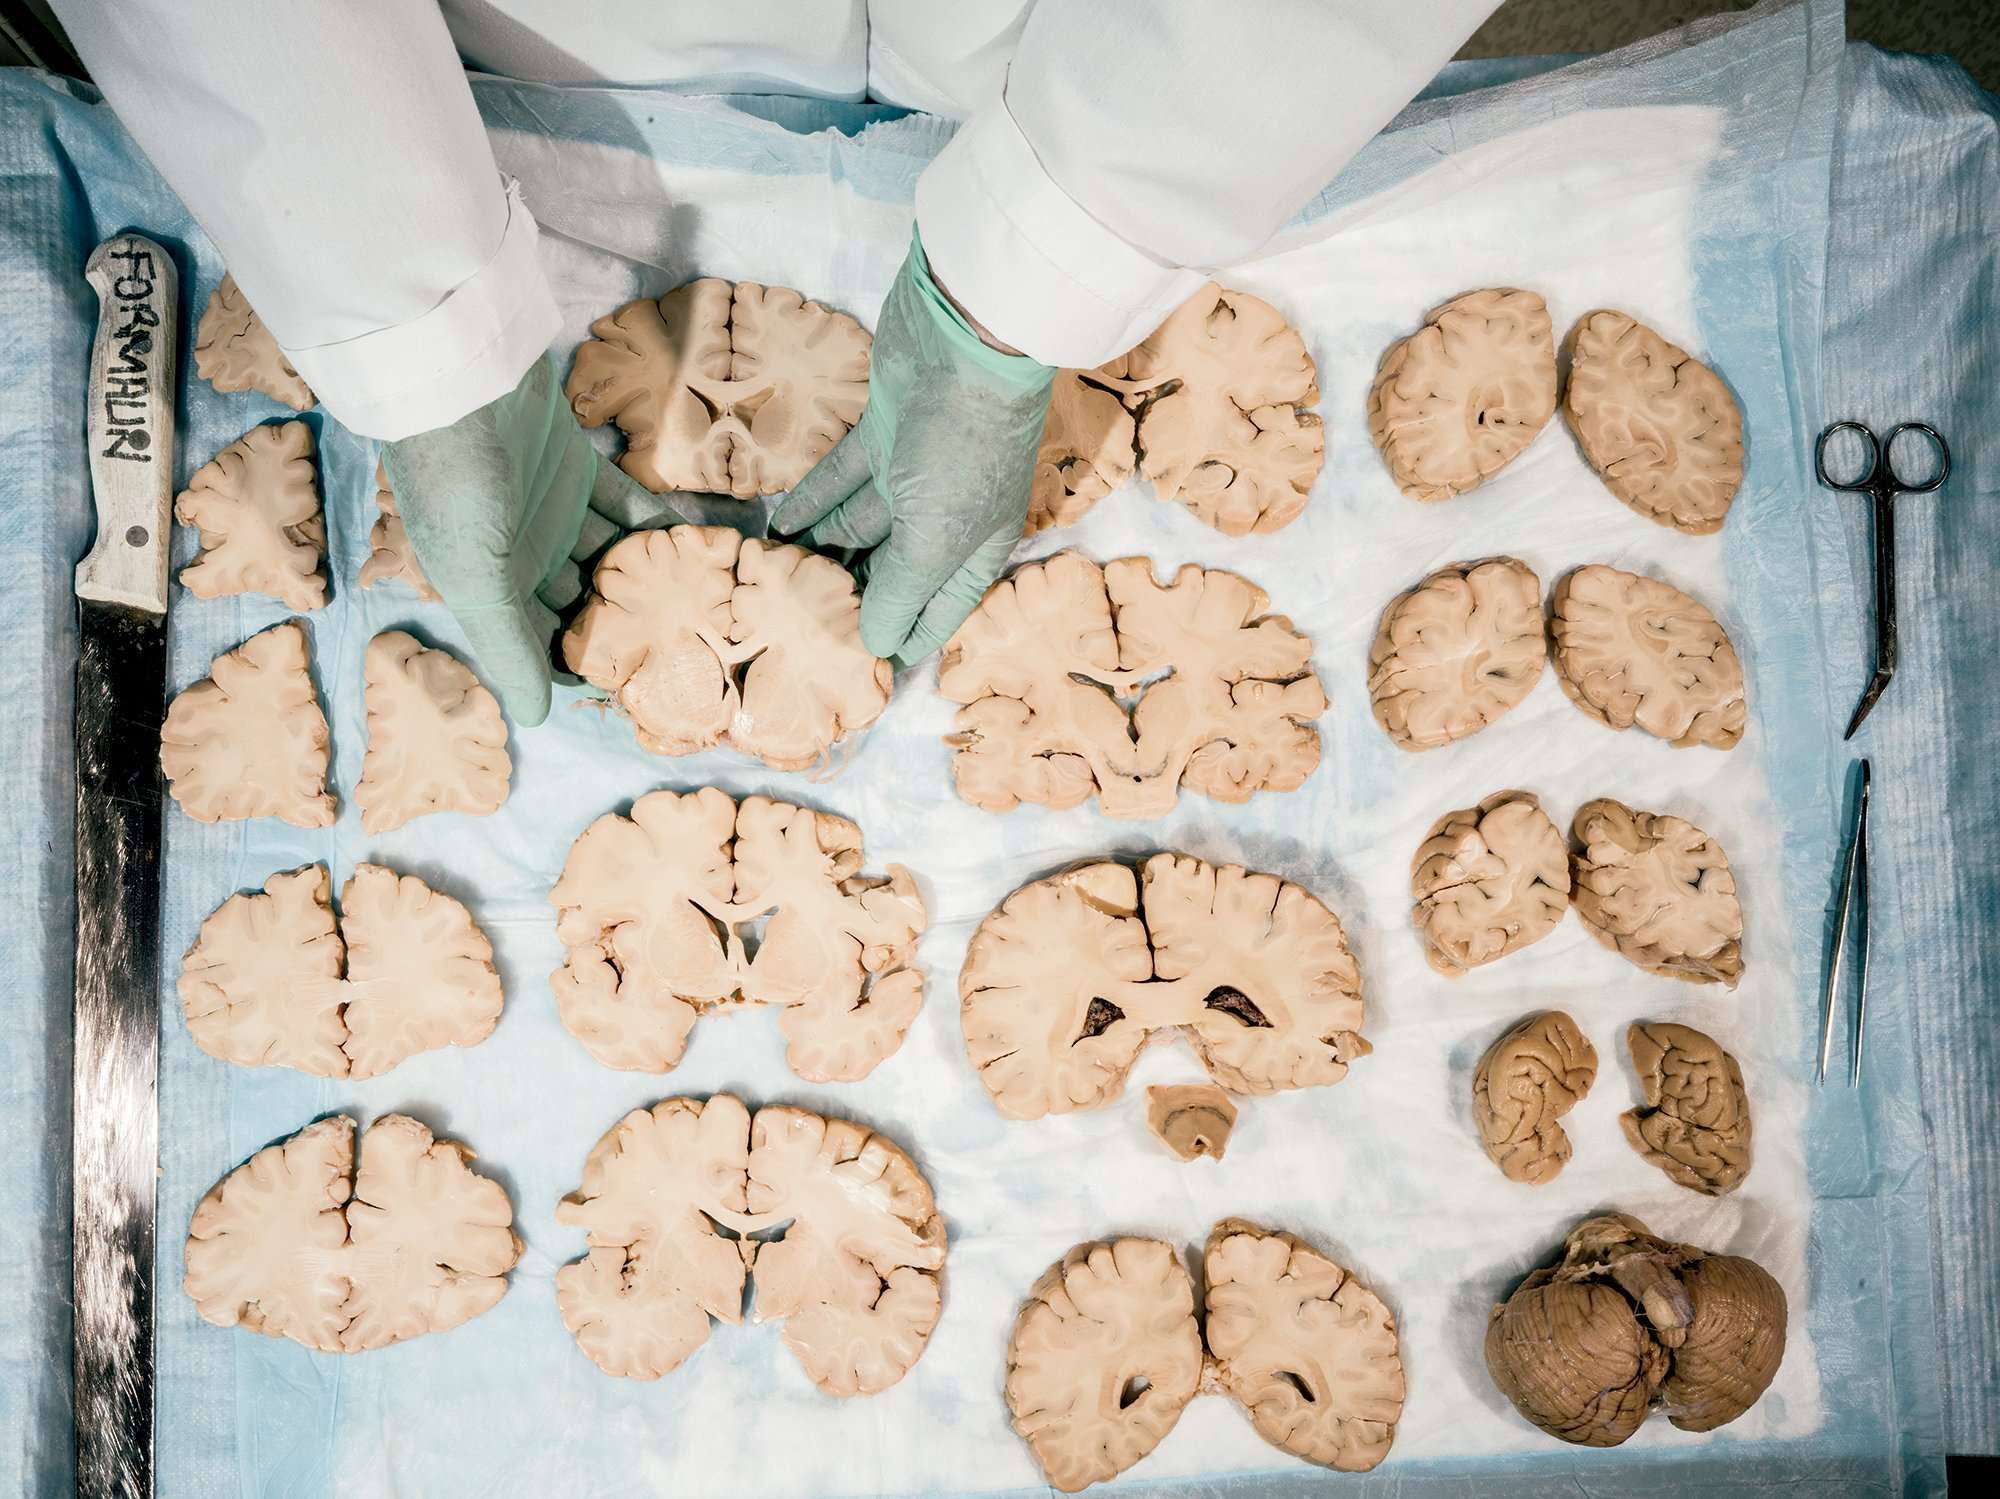 Human brains awaiting study at NIH's brain bank, which Lipska has led since 2013. Photograph by Greg Kahn.